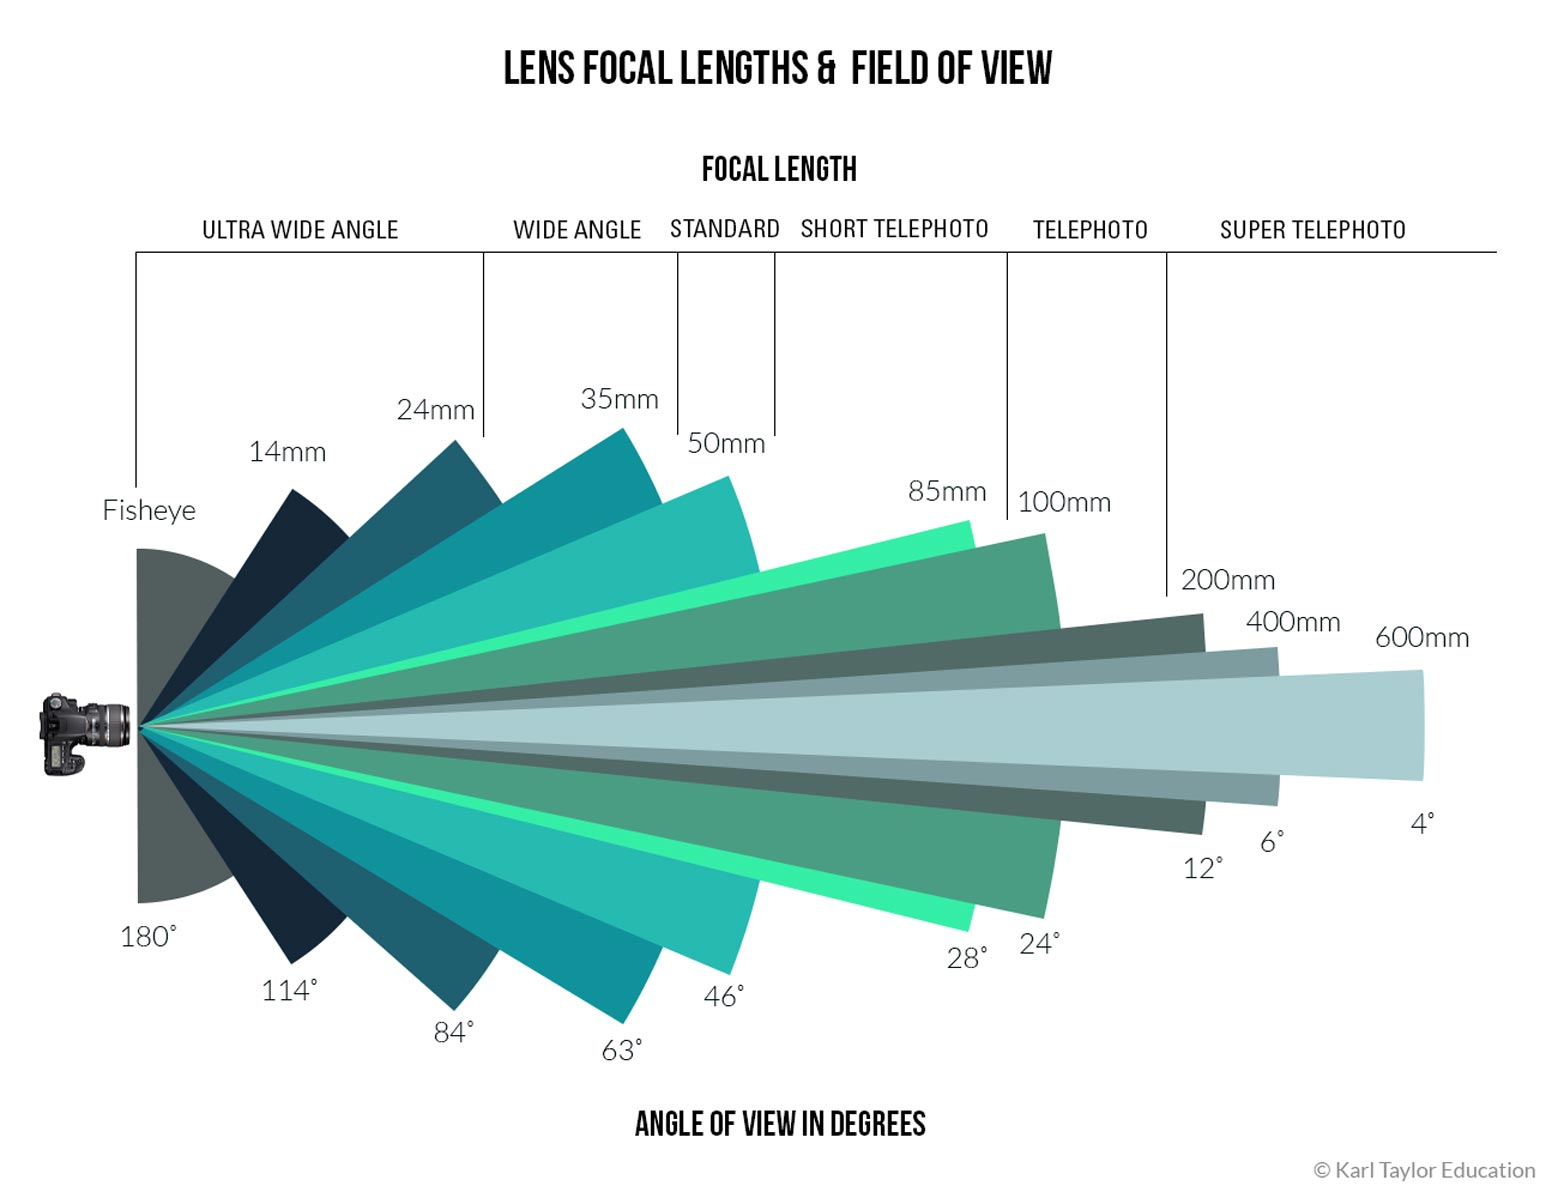 How camera lenses work - lens focal length and field of view